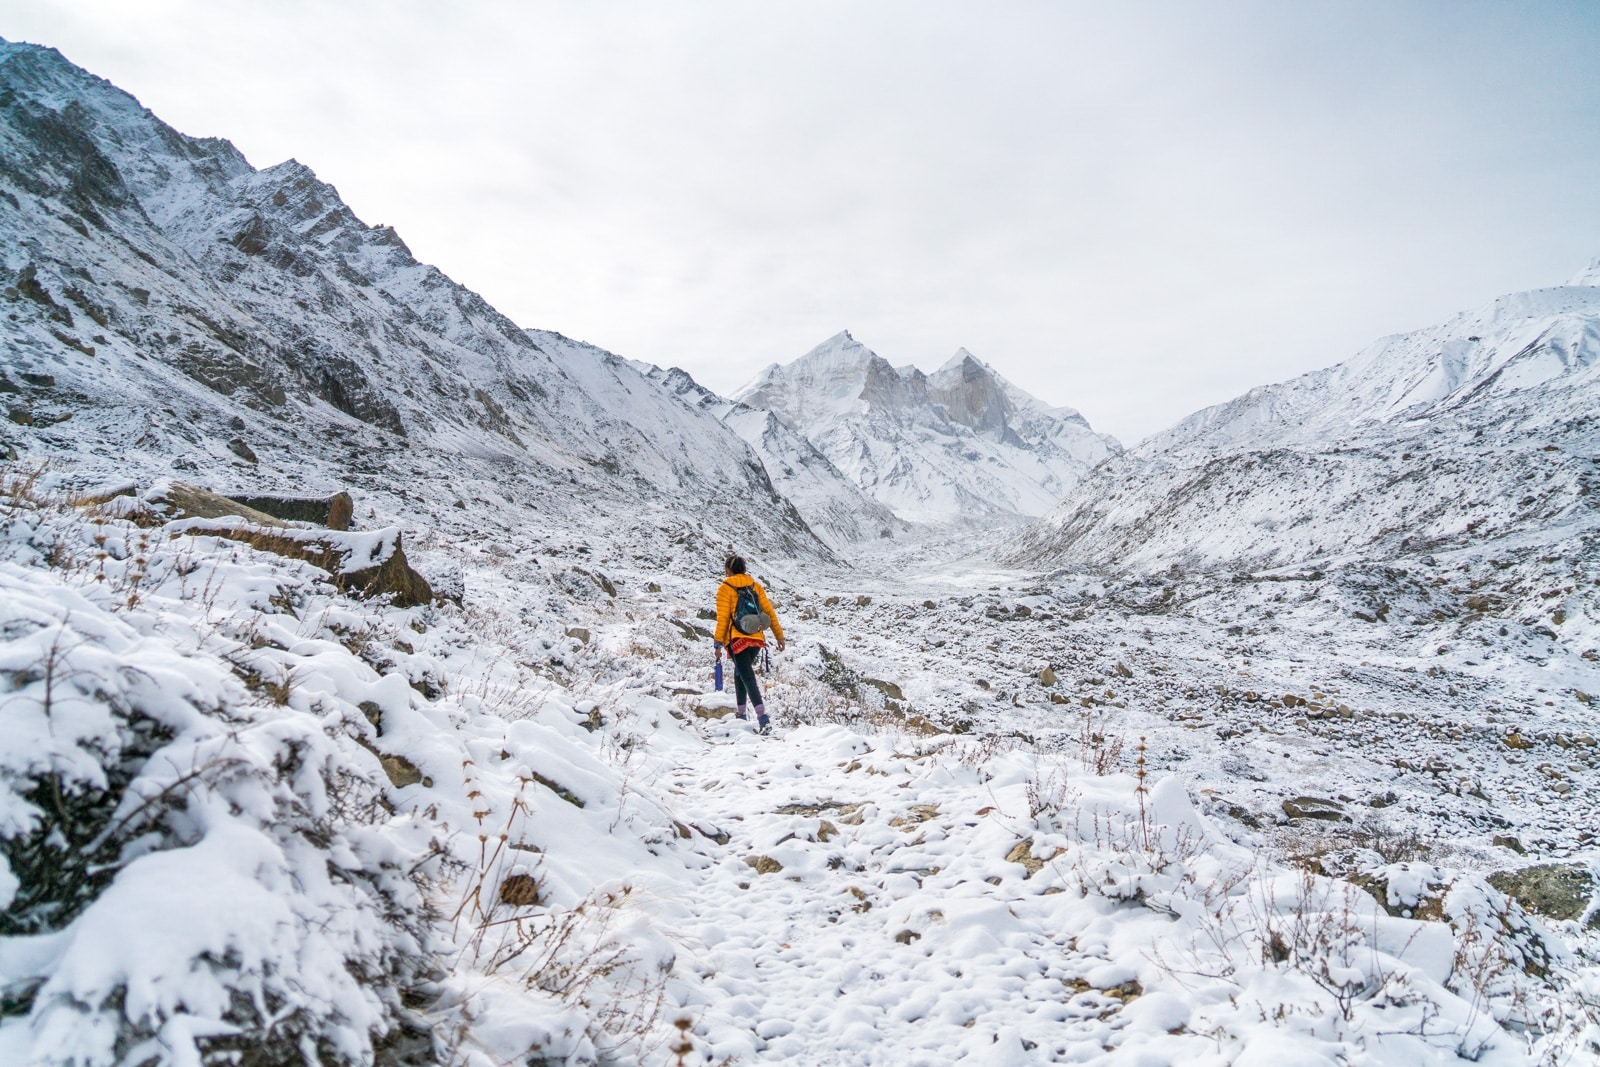 Guide to trekking to the start of the River Ganga in Uttarakhand, India - Walking in a yellow coat through snowy mountains - Lost With Purpose travel blog